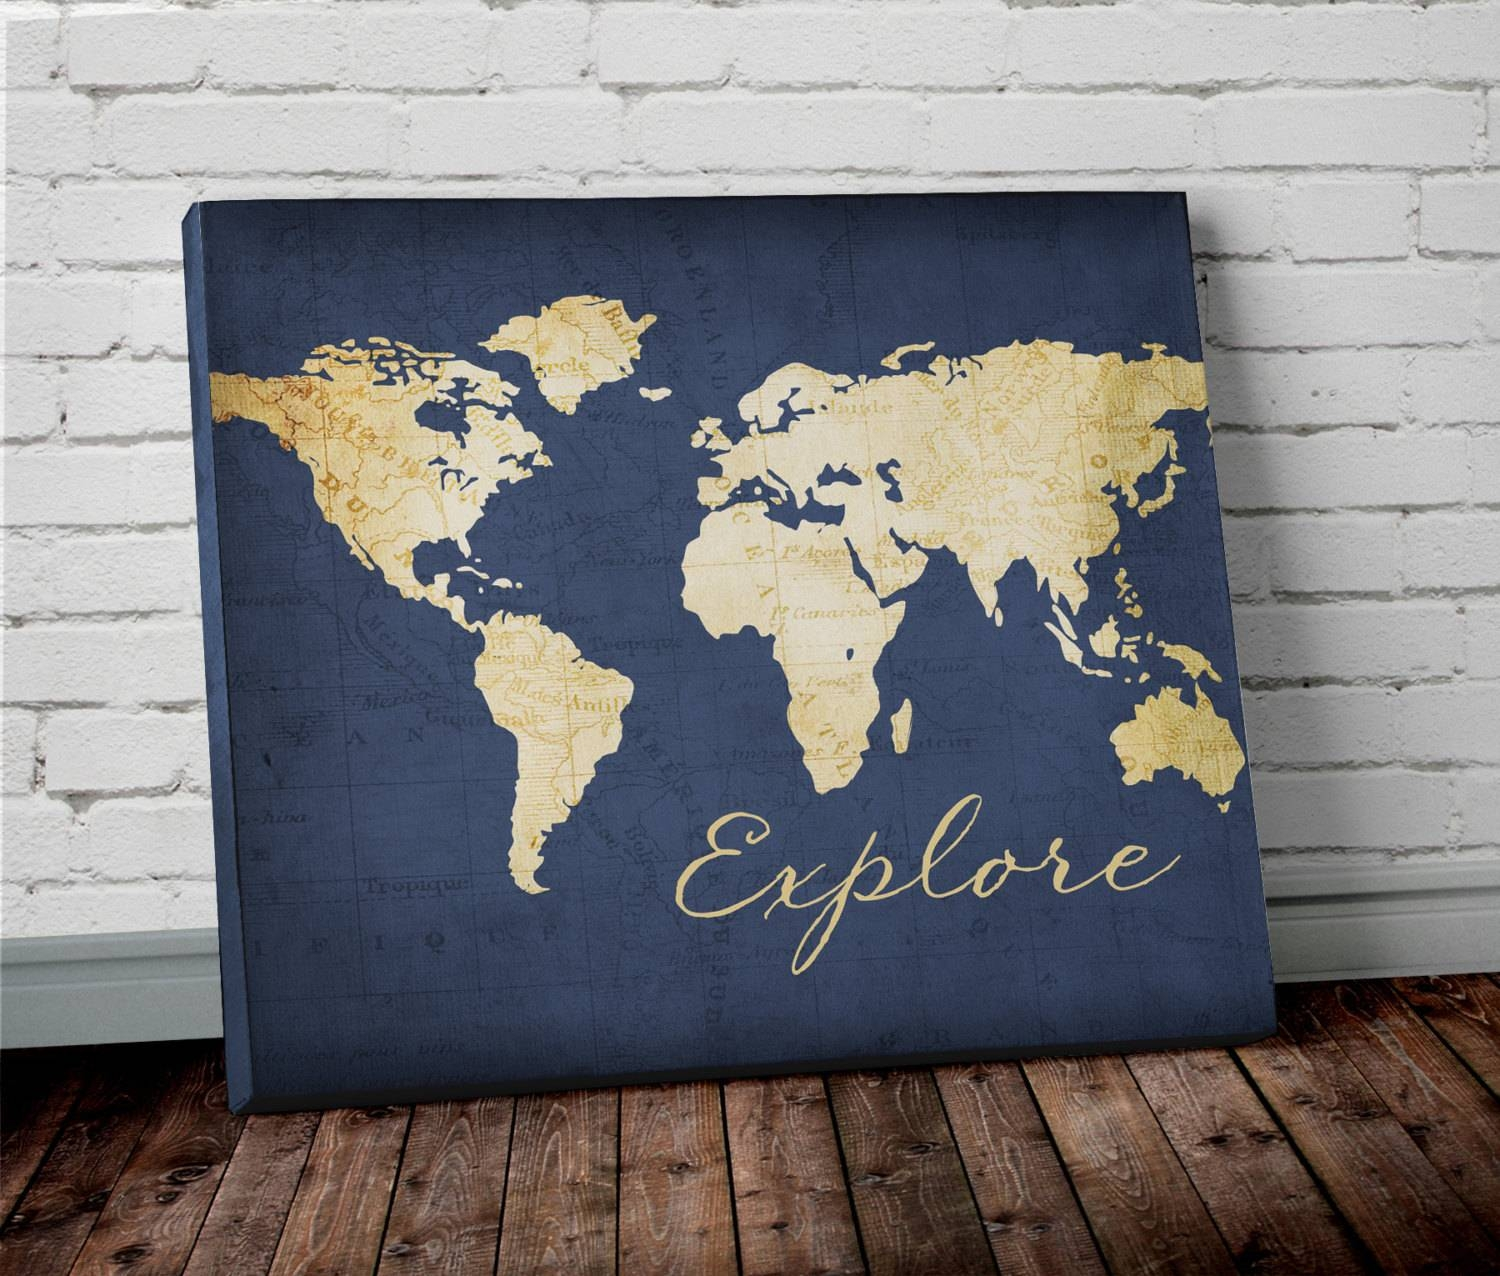 Explore World Map Wall Art Canvas World Map Print In Navy Throughout Most Recently Released Map Wall Art Prints (View 5 of 20)